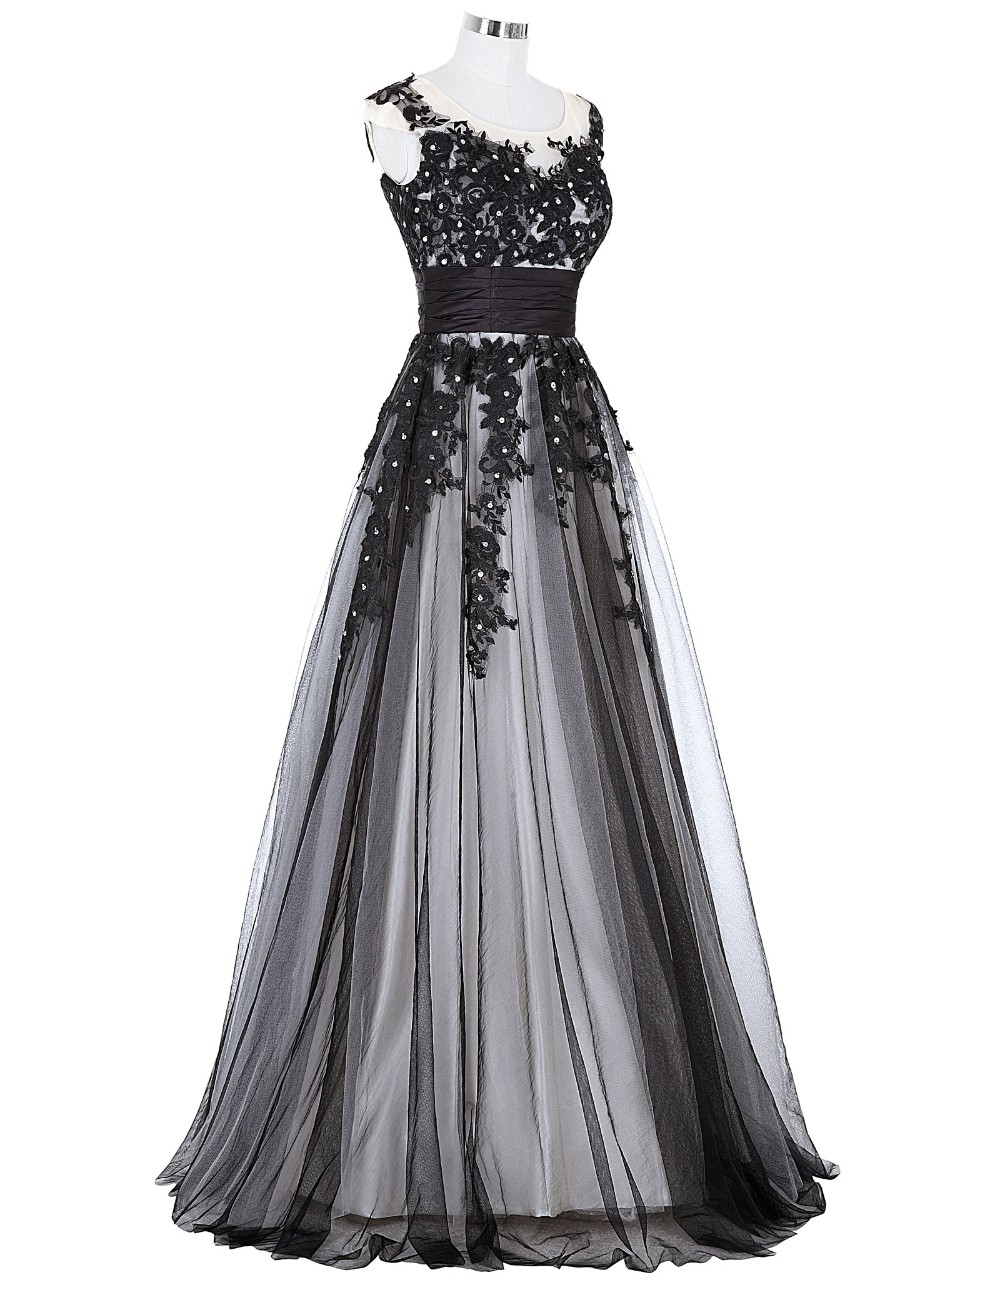 Grace Karin Long Prom Dress 2018 Elegant Black Appliques Sleeveless Soft Tulle Satin Real Picture Robes De Soiree Prom Dresses 7